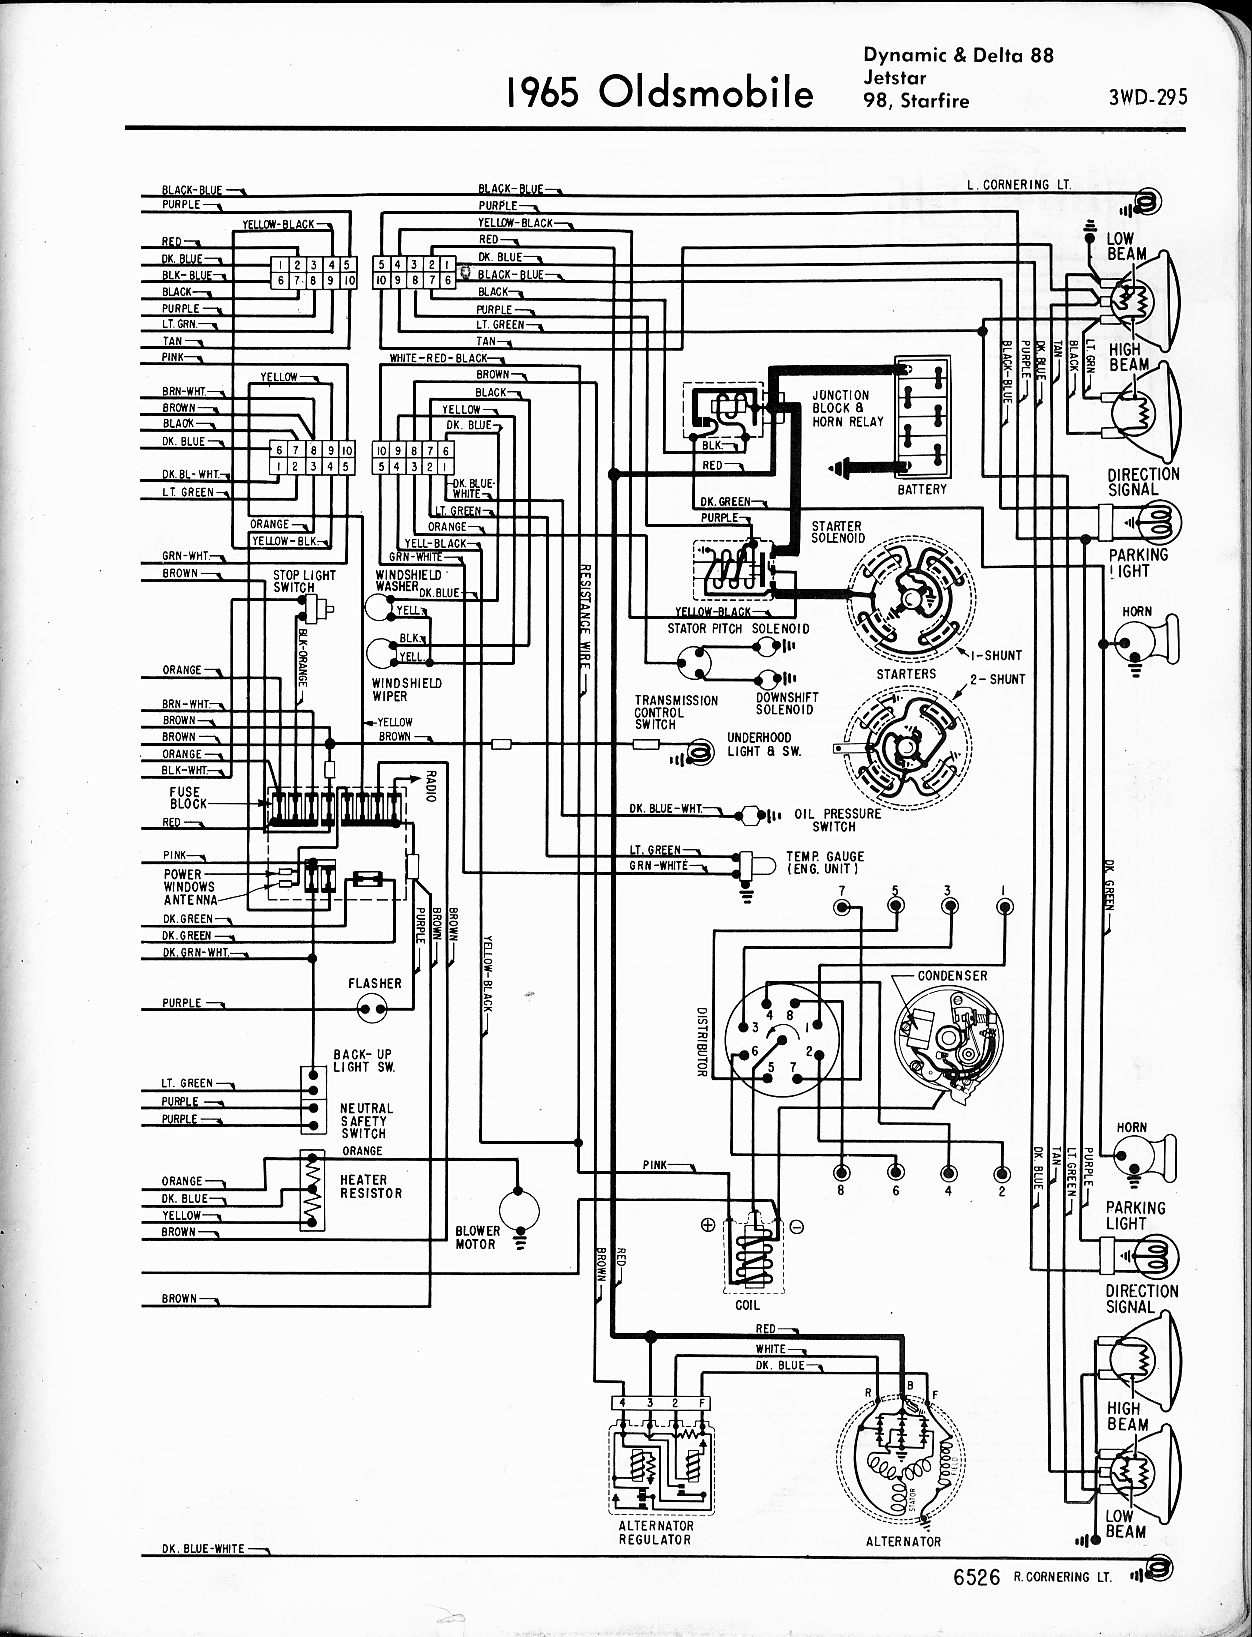 MWire5765 295 1984 delta 88 fuse box diagram 1984 wiring diagrams Basic Electrical Wiring Diagrams at bayanpartner.co